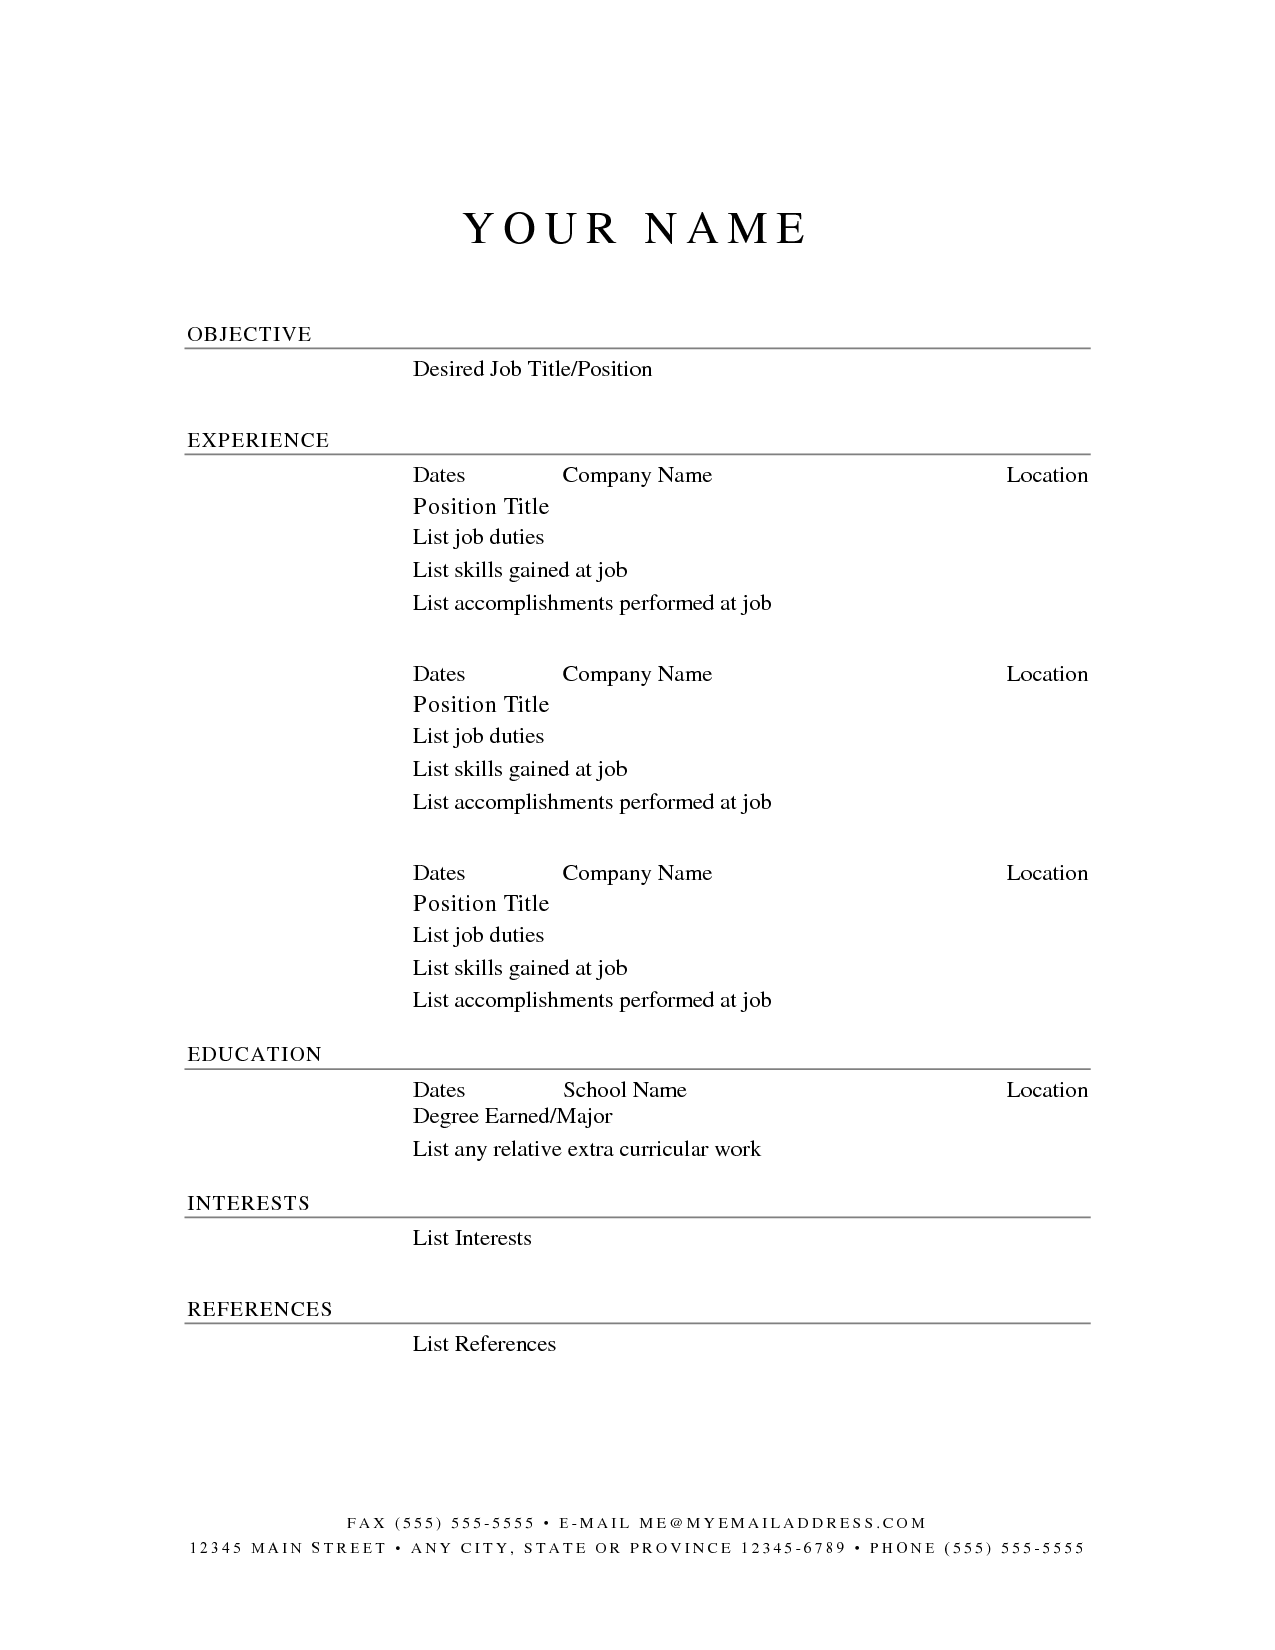 Superb Printable Resume Templates | Free Printable Resume Template  Free Basic Resume Templates Download